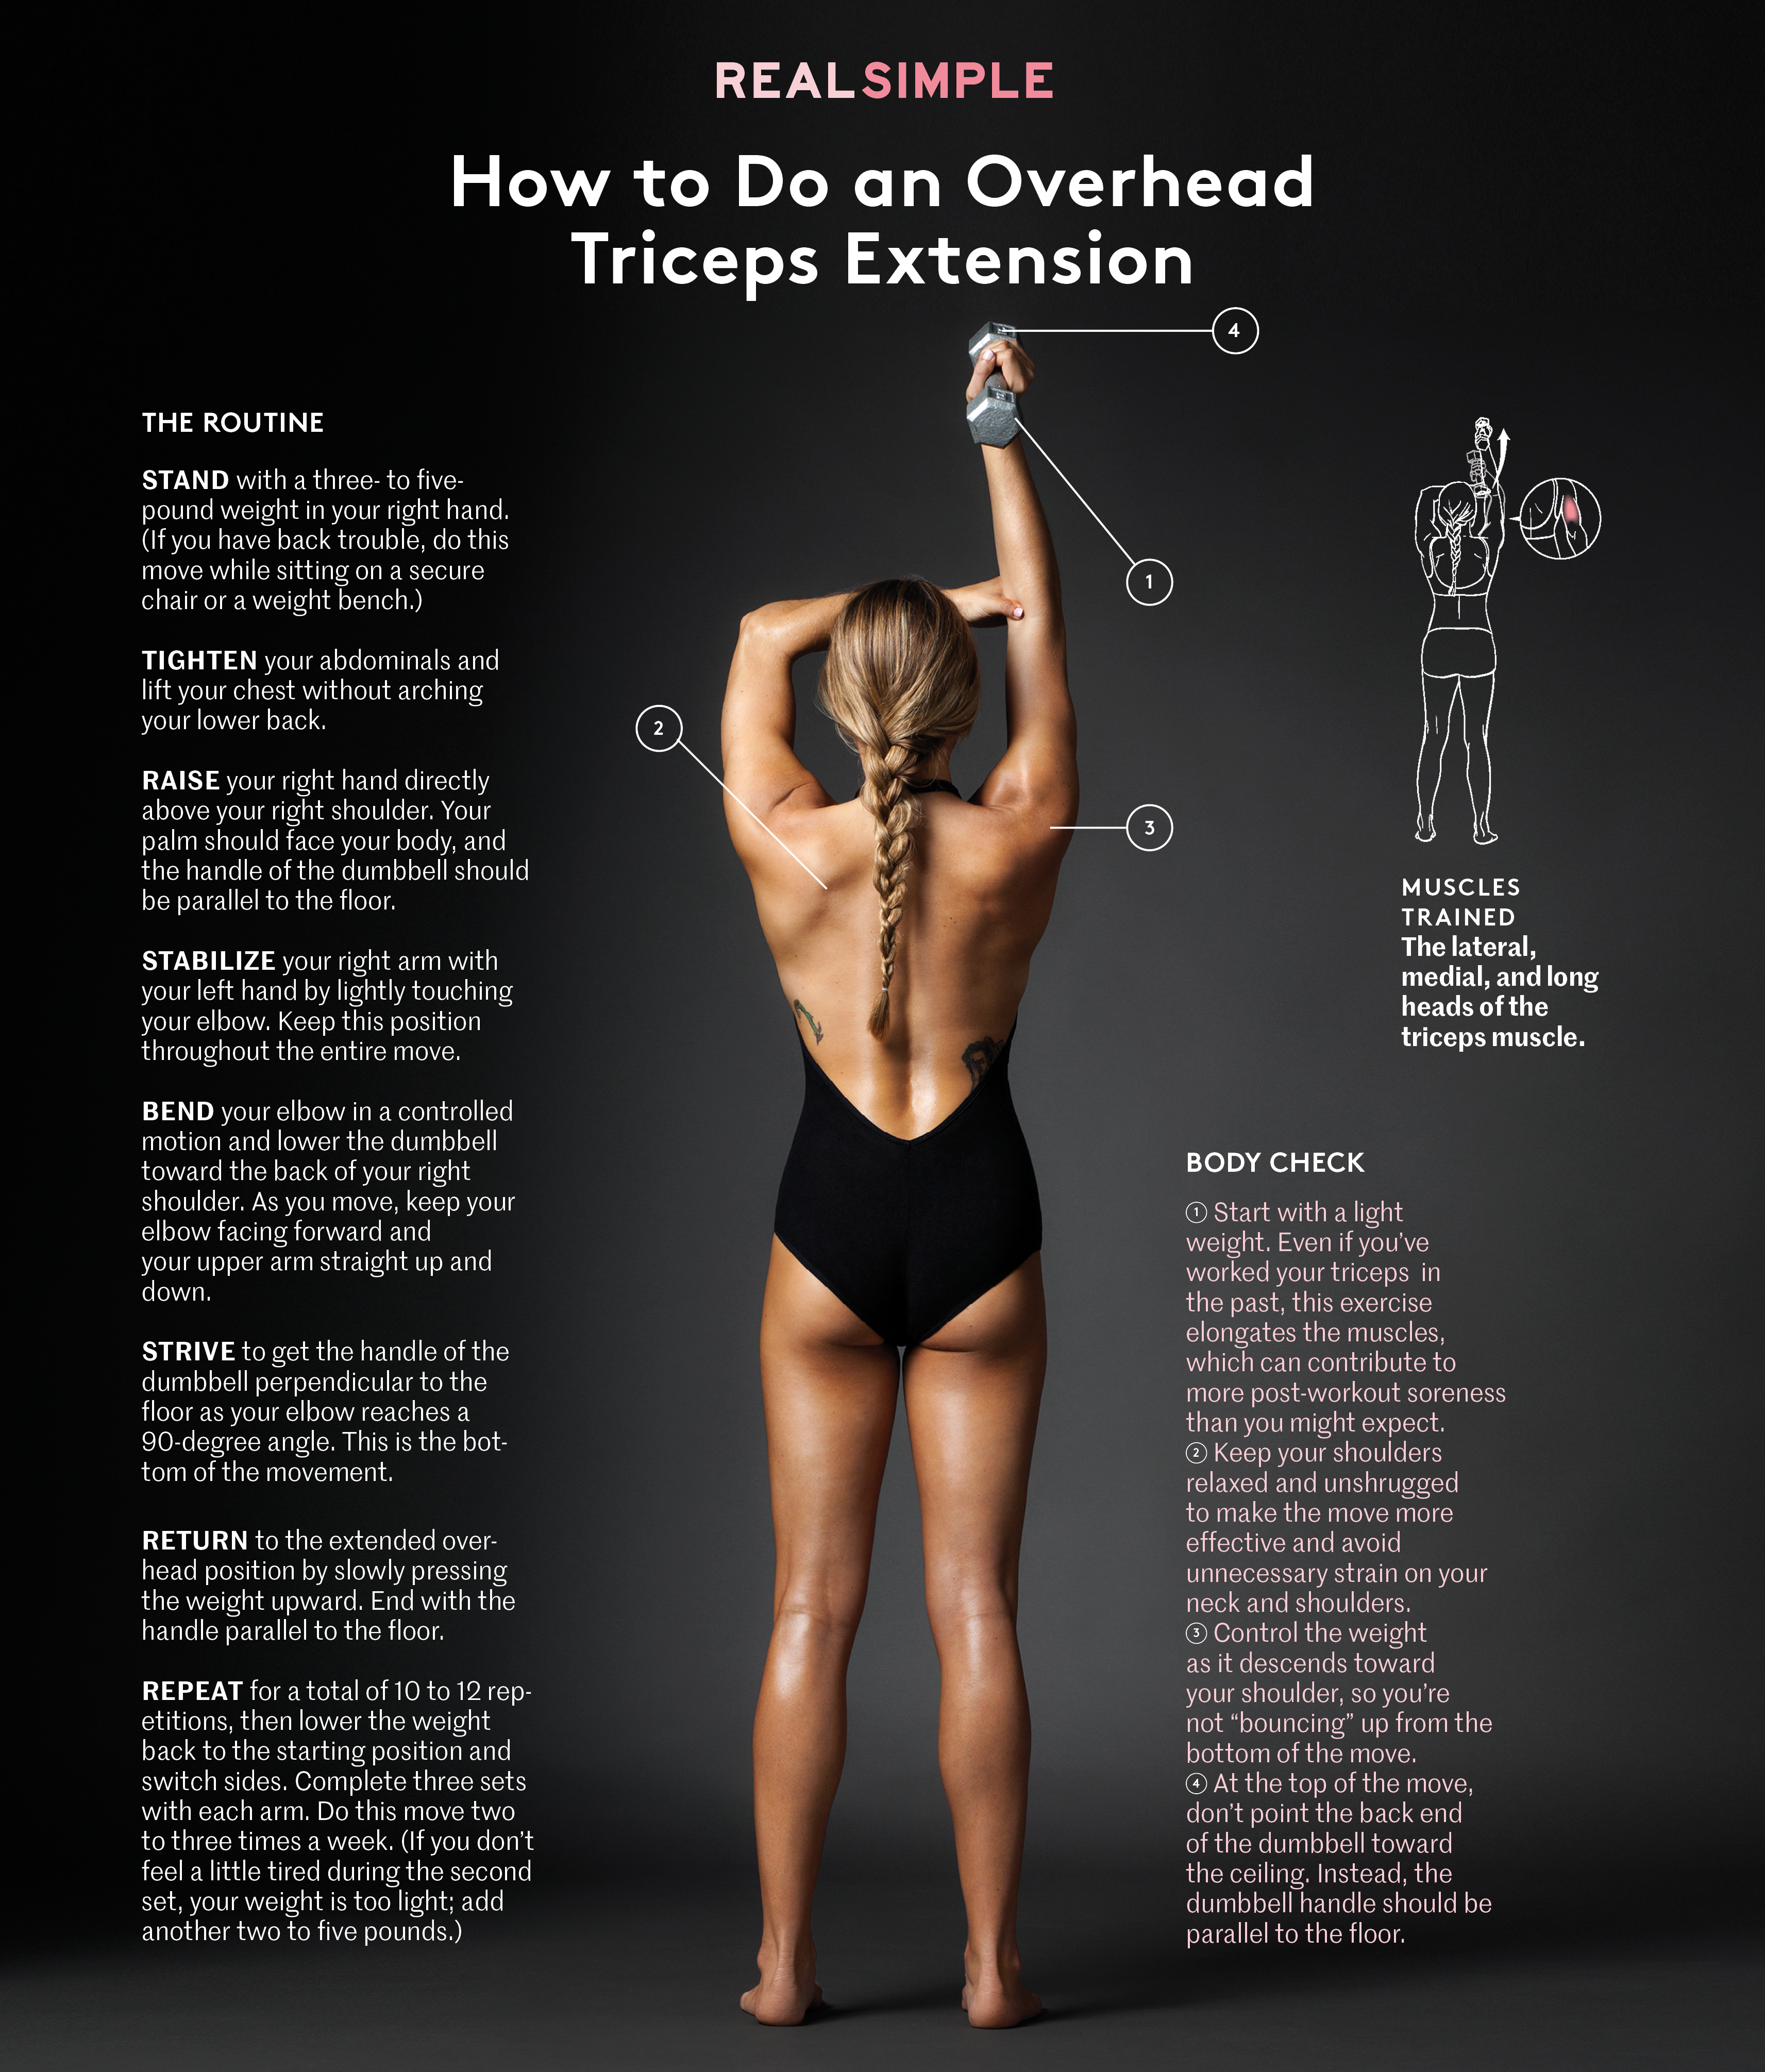 How to Do an Overhead Triceps Extension